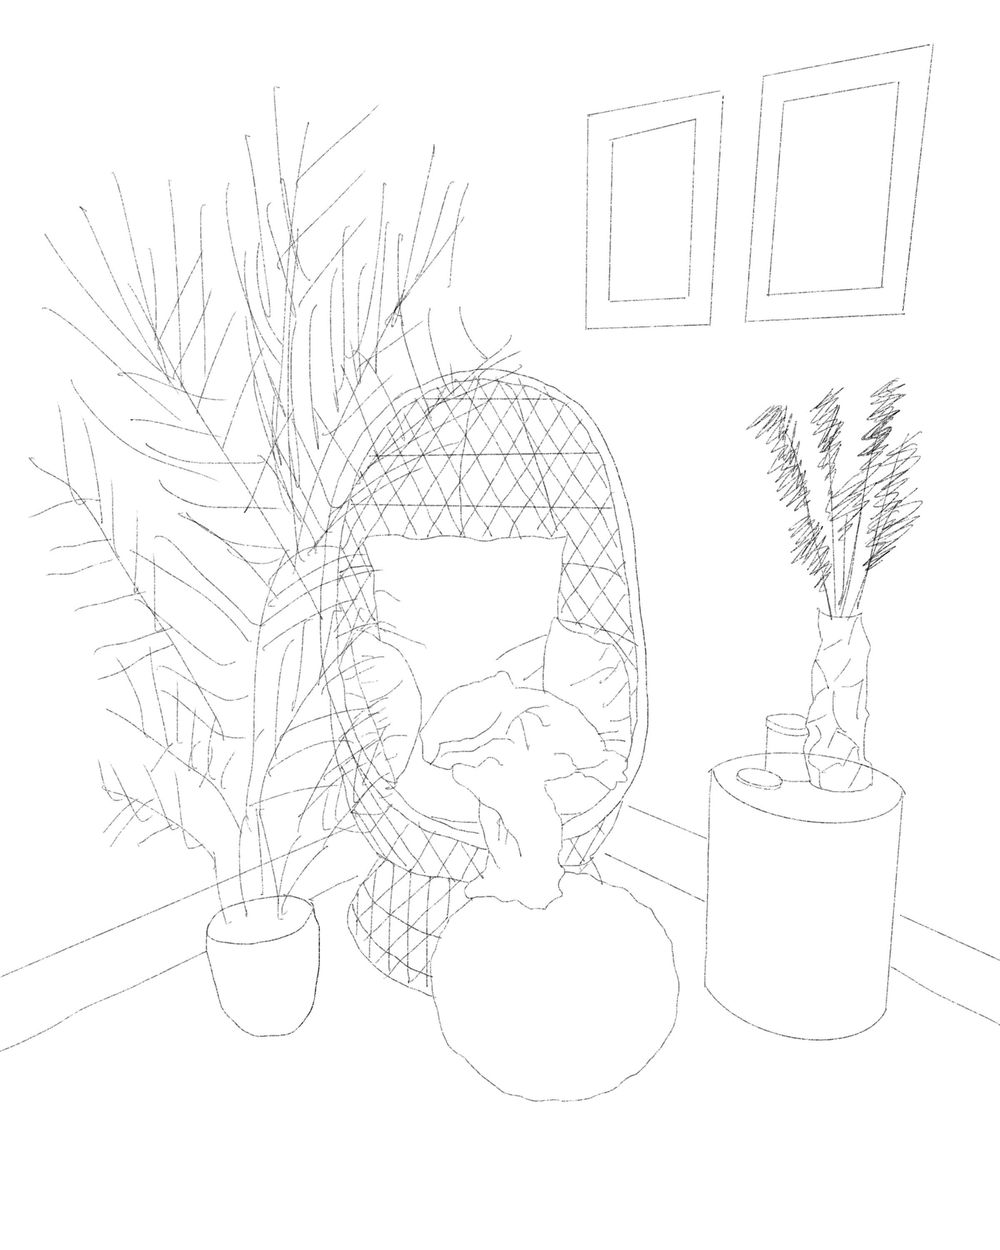 Observing my house :) - image 2 - student project